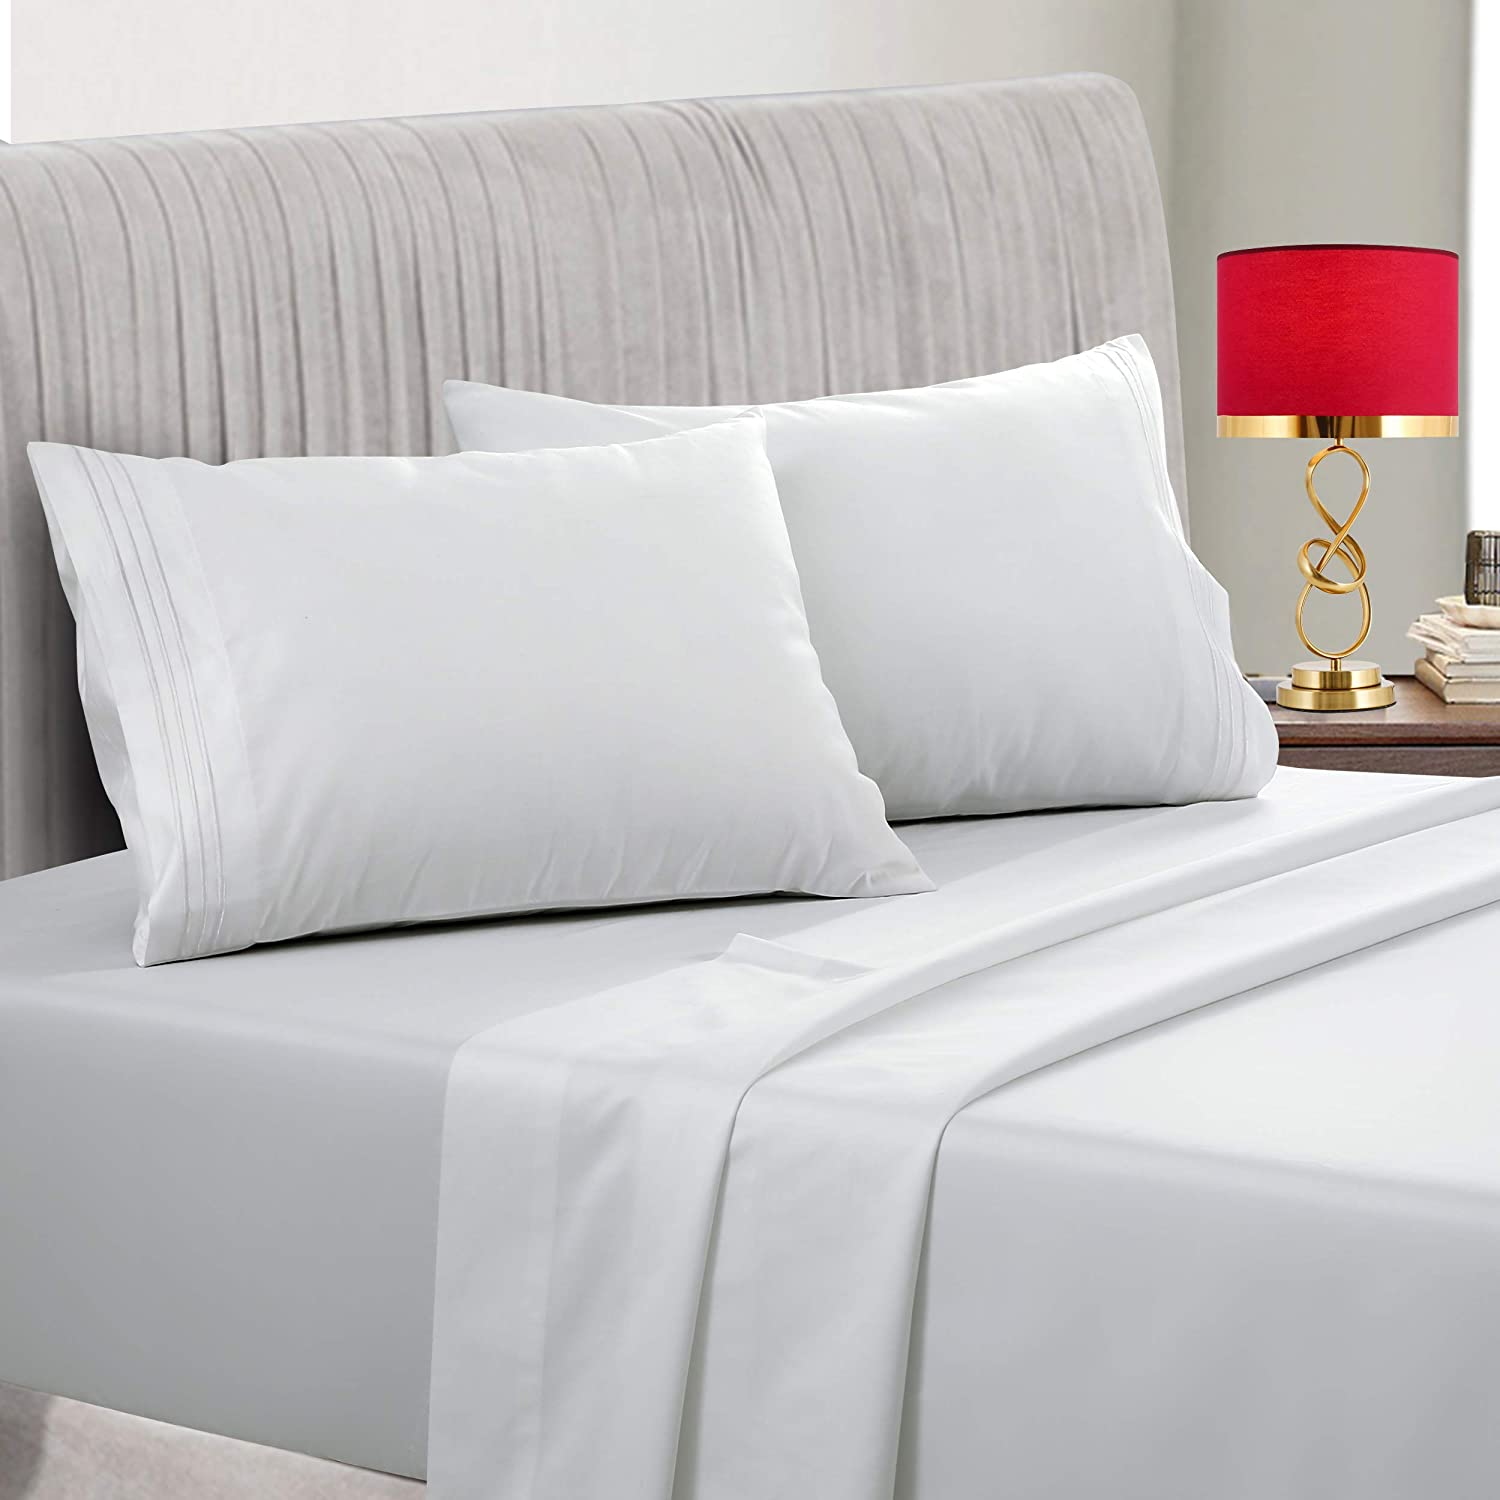 Amazon Com Emonia 400 Thread Count 100 Cotton Sheet White Queen Sheets Set 4 Piece Long Staple Cotton Superior Bedding Sheets For Bed Breathable Cooling Soft Silky Sateen Weave Fits Mattress 14 Deep Pocket Kitchen Dining